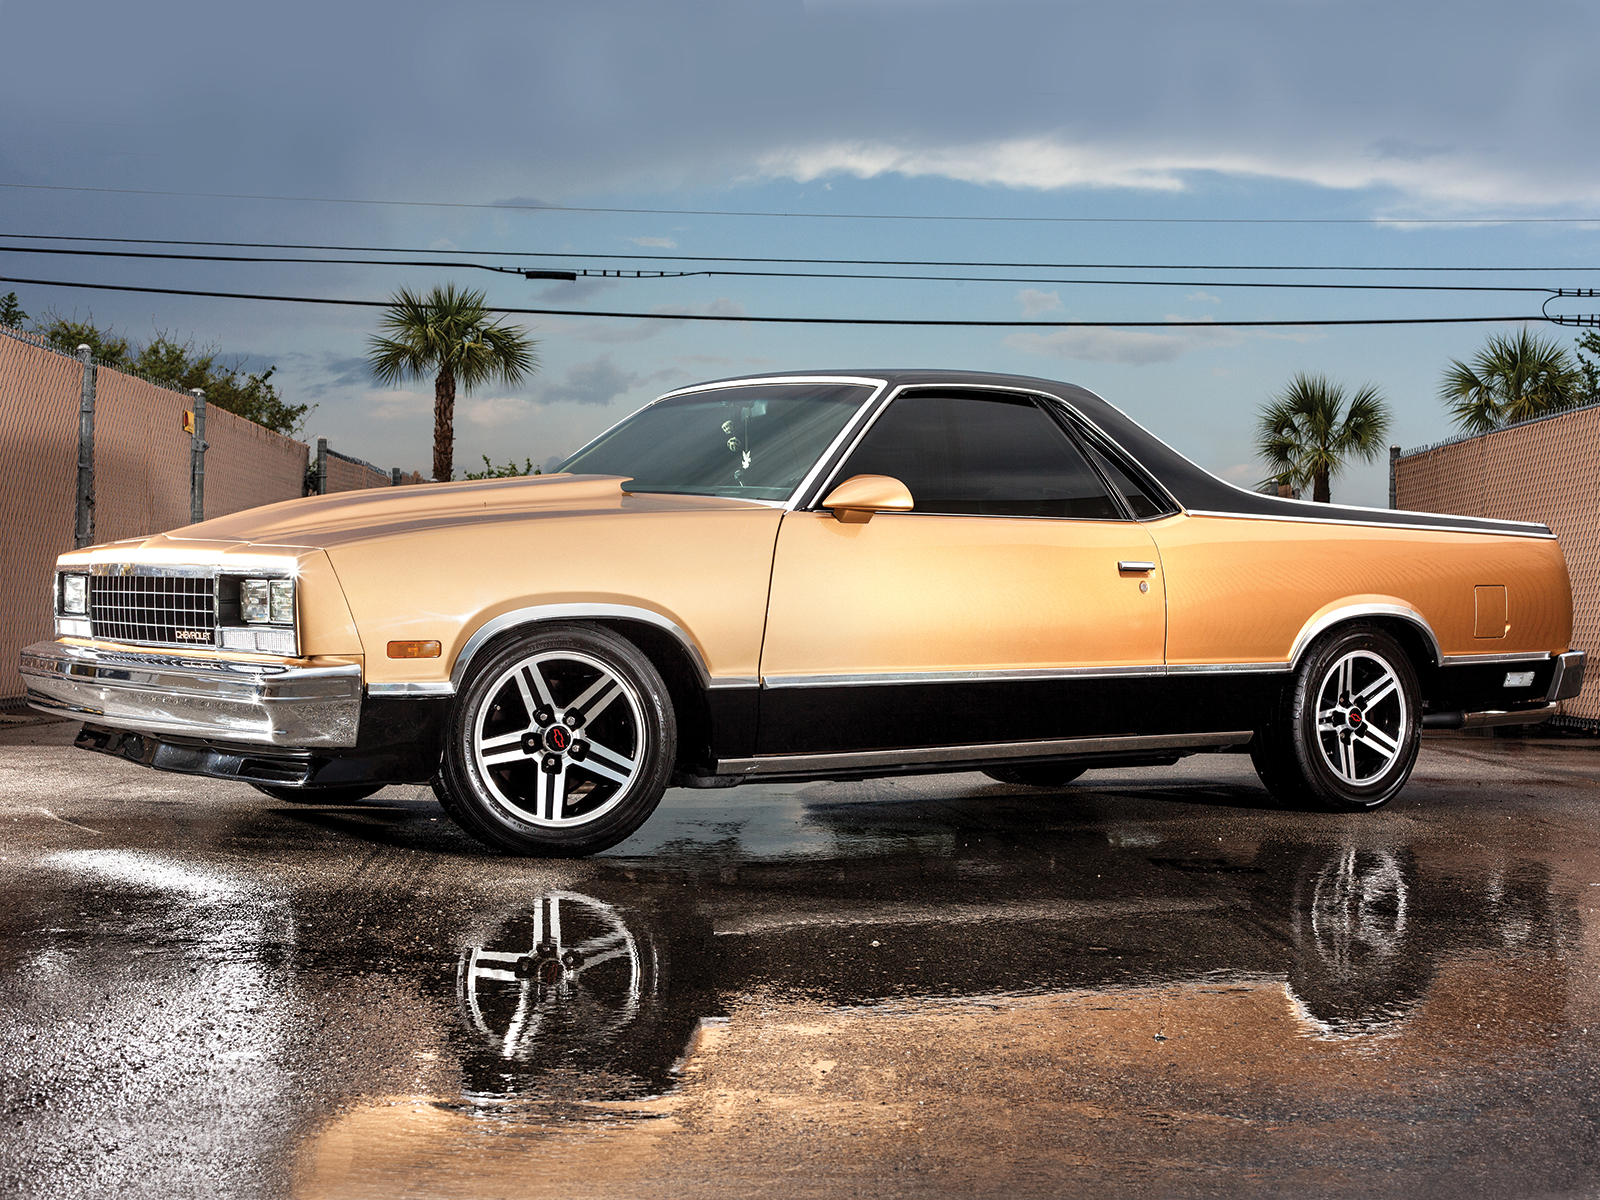 1986-chevrolet-el-camino-front-side-view